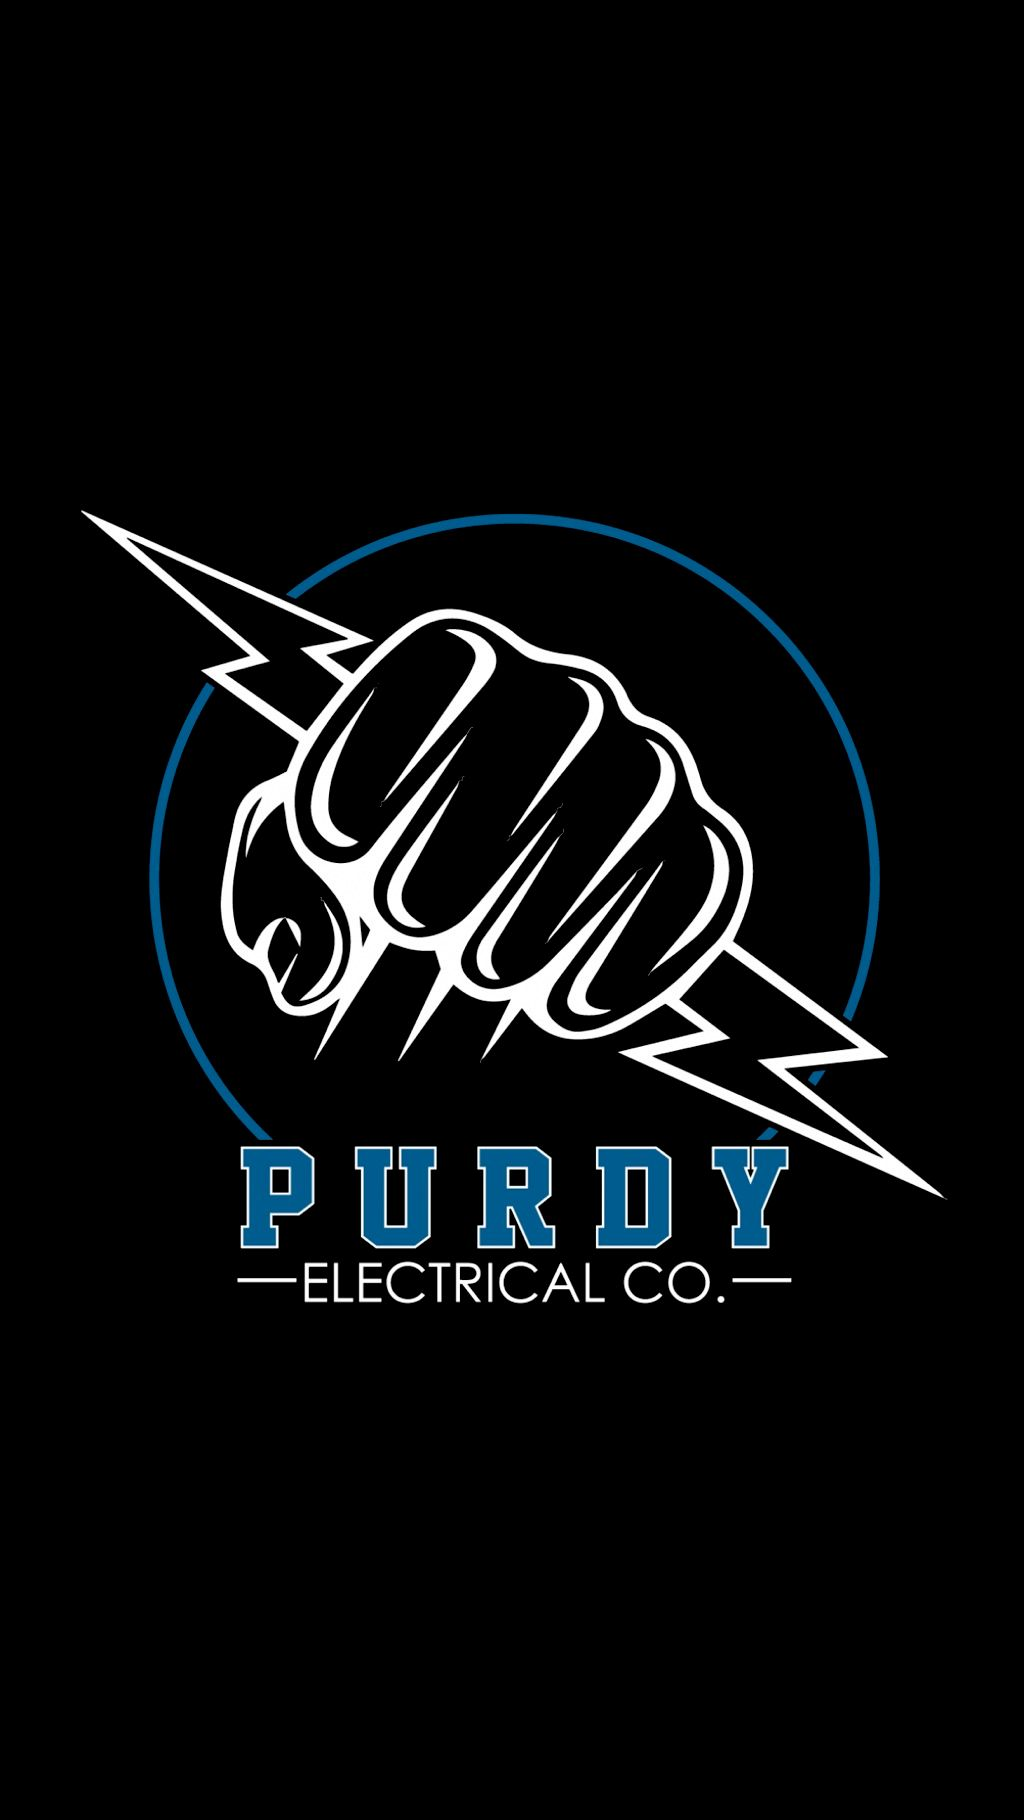 Purdy Electrical Co.